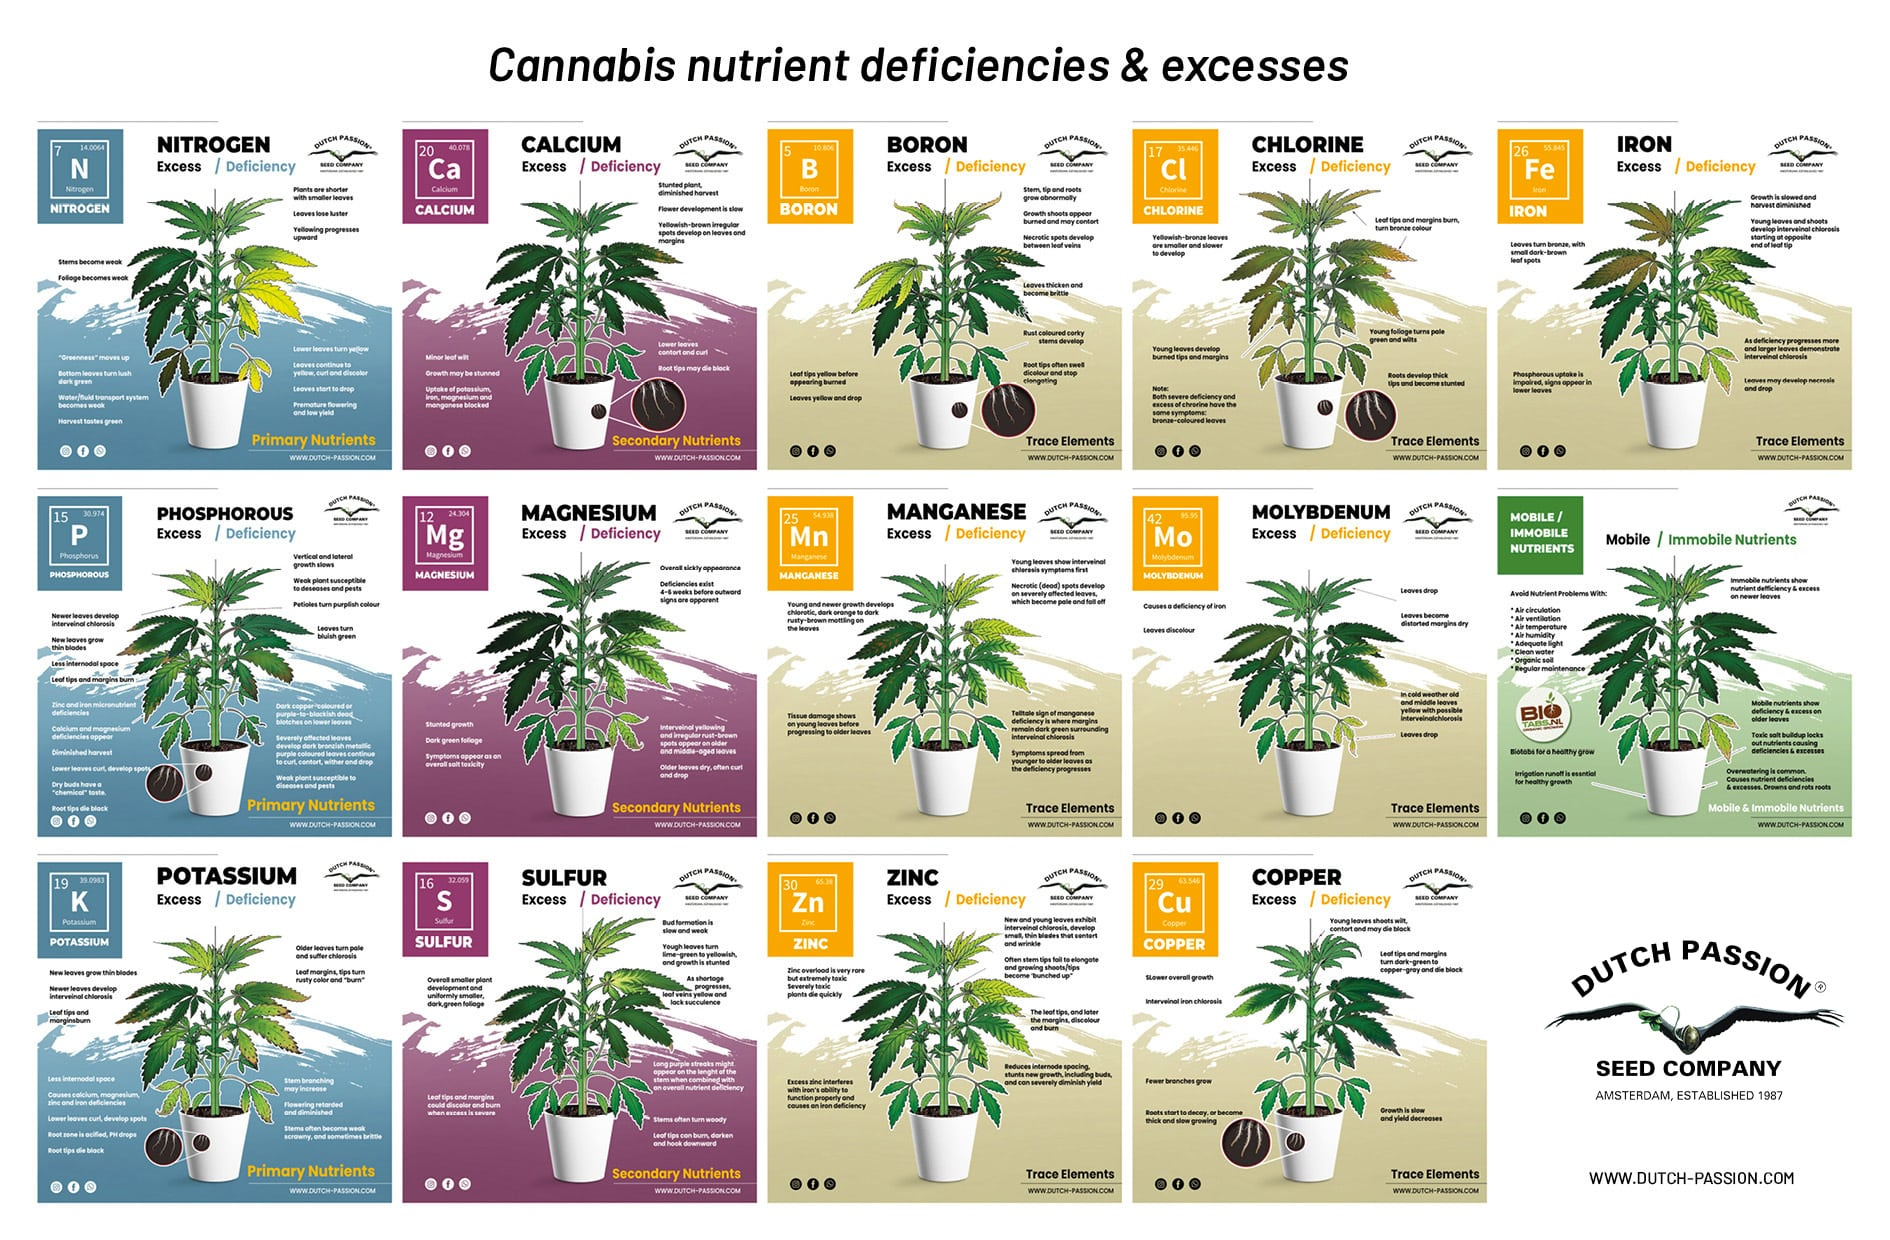 Cannabis nutrient deficiencies and excesses chart